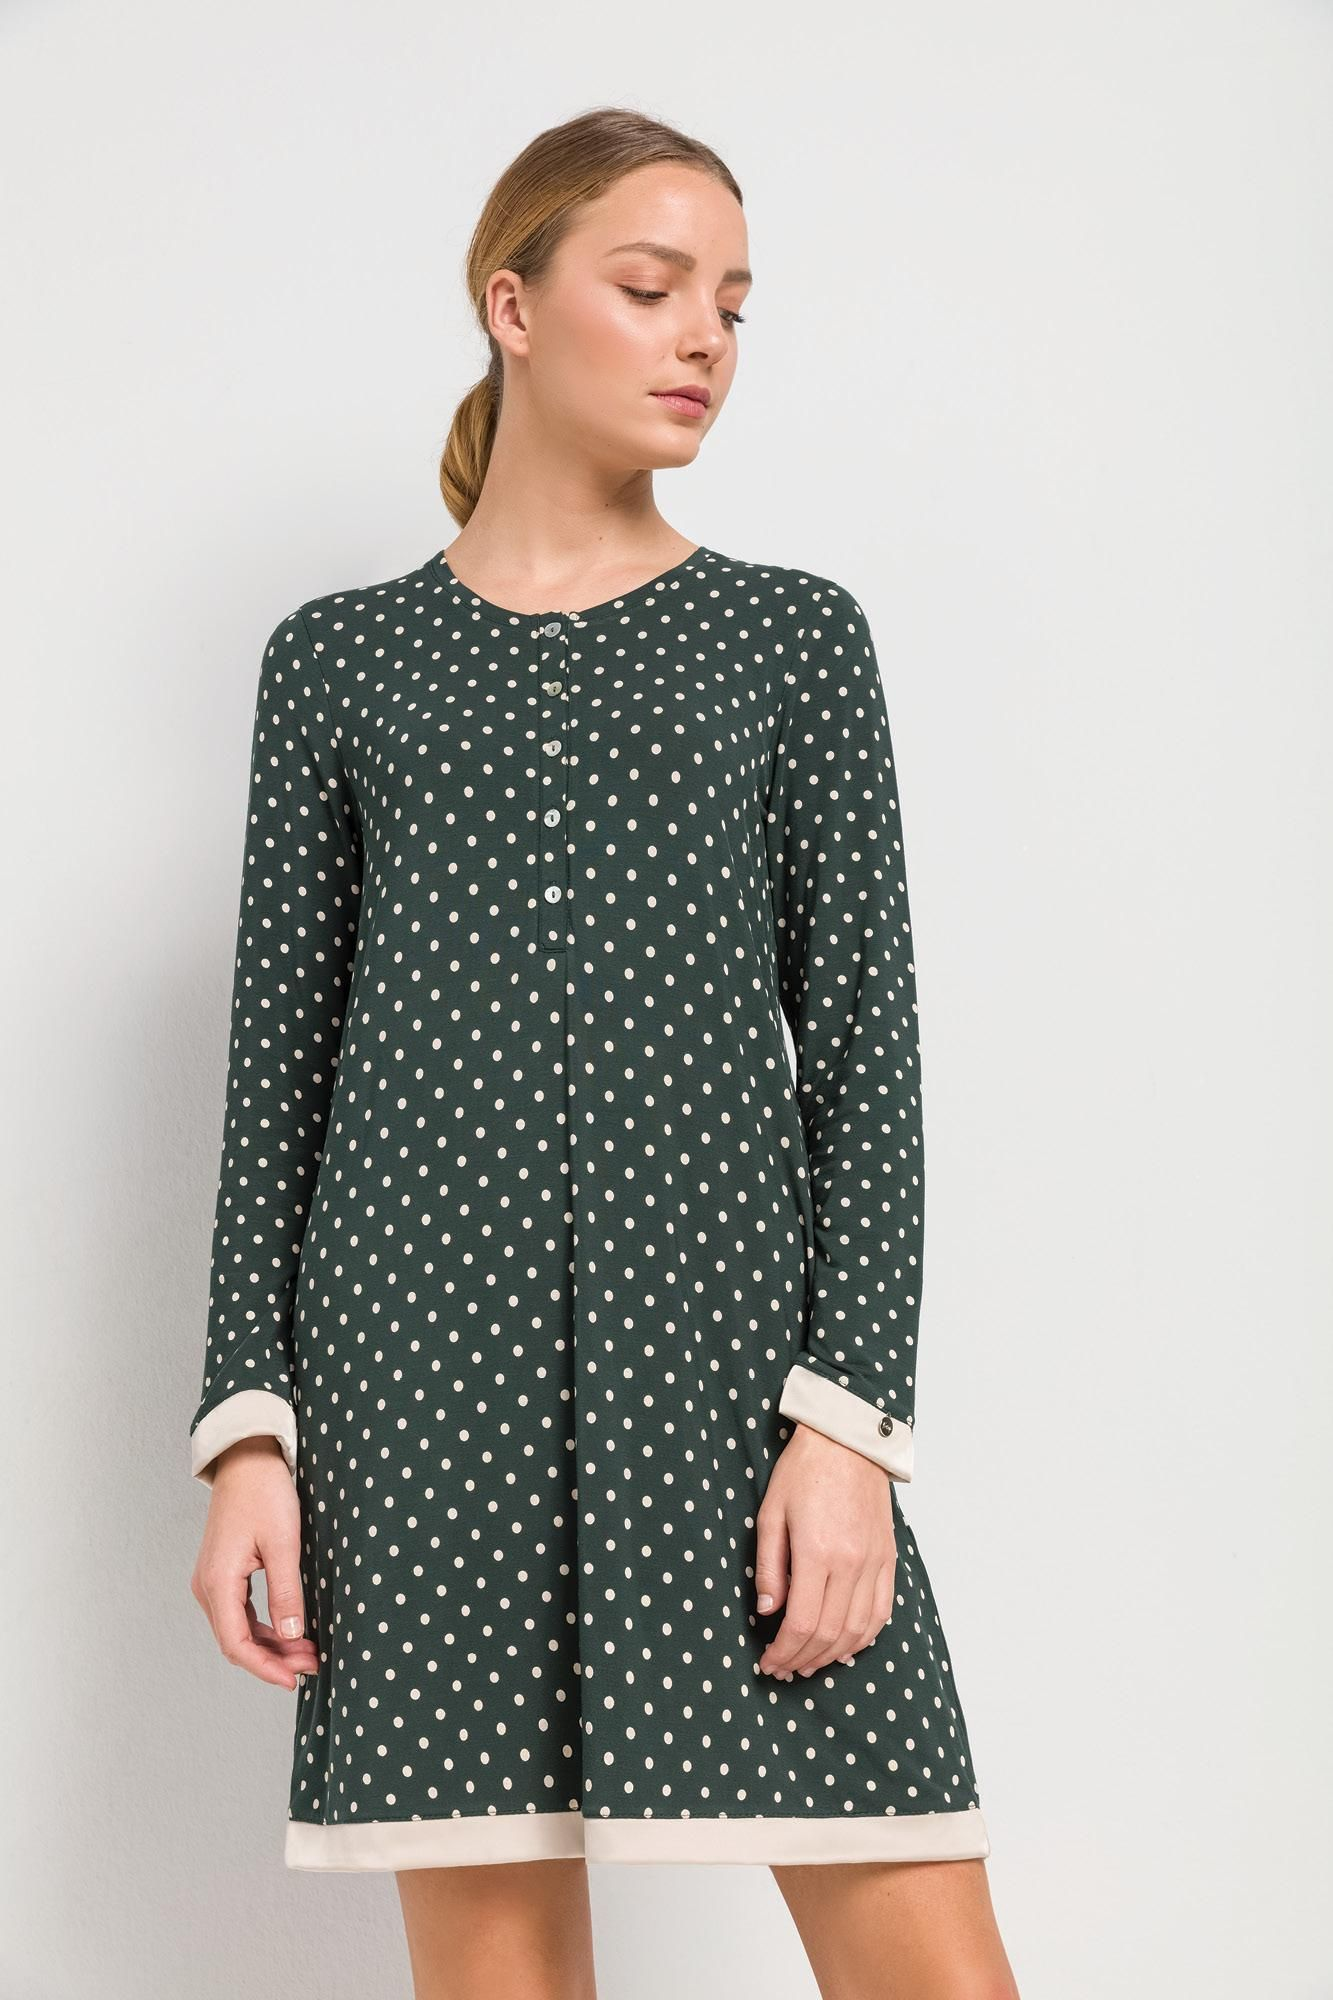 Women's Polka Dot Nursing Nightgown Plus Size